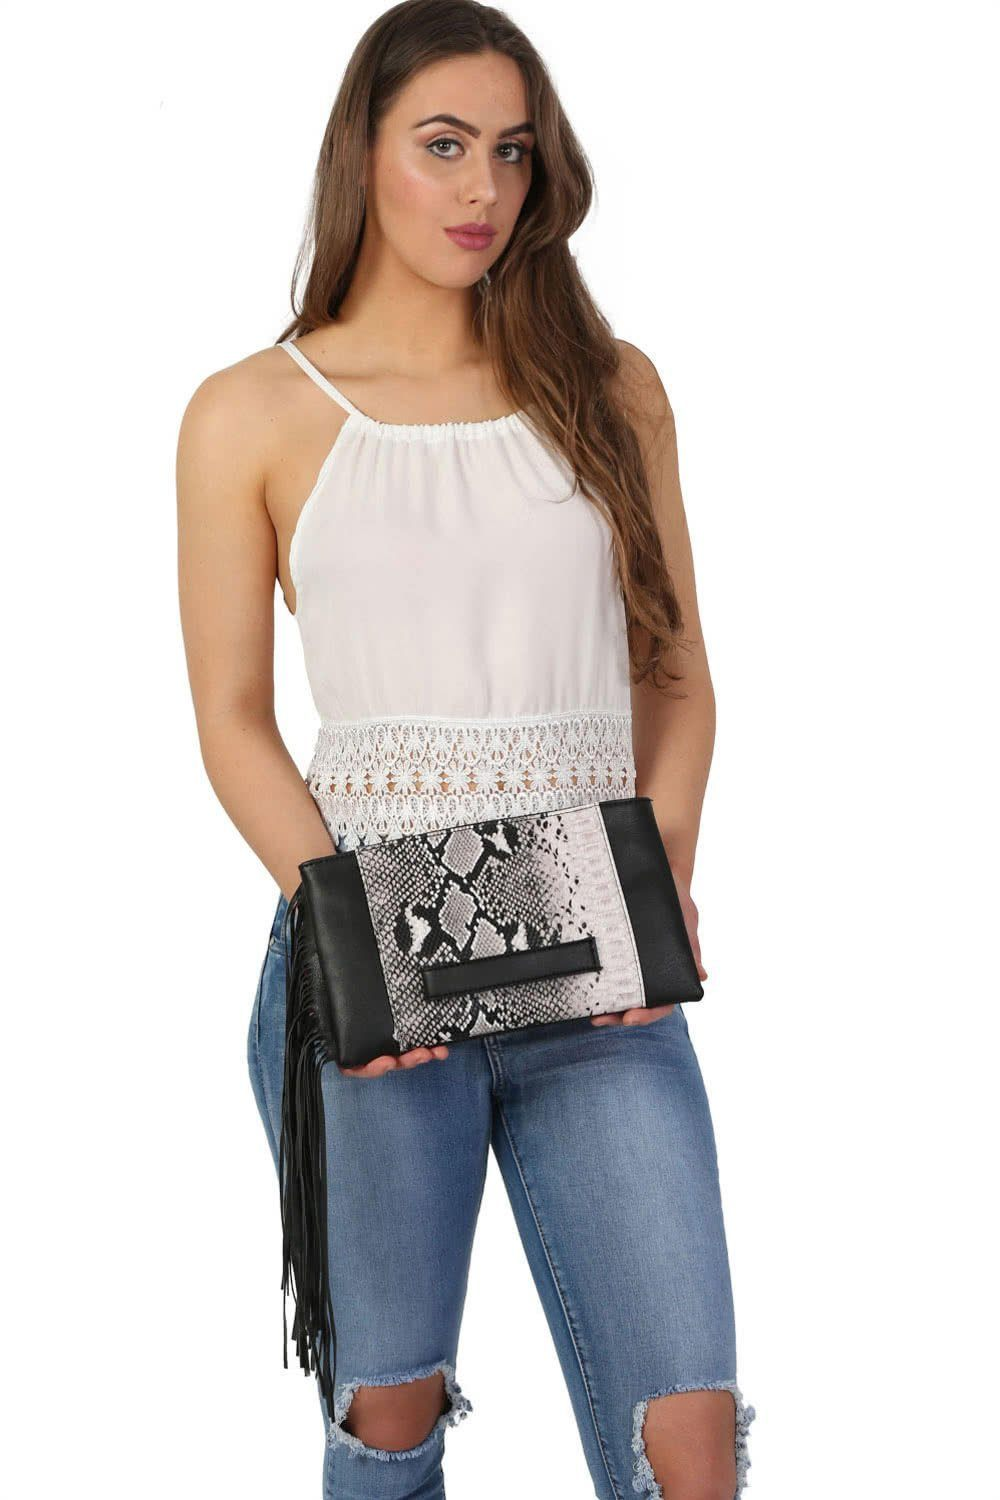 Tassel Clutch Bag in Brown 0